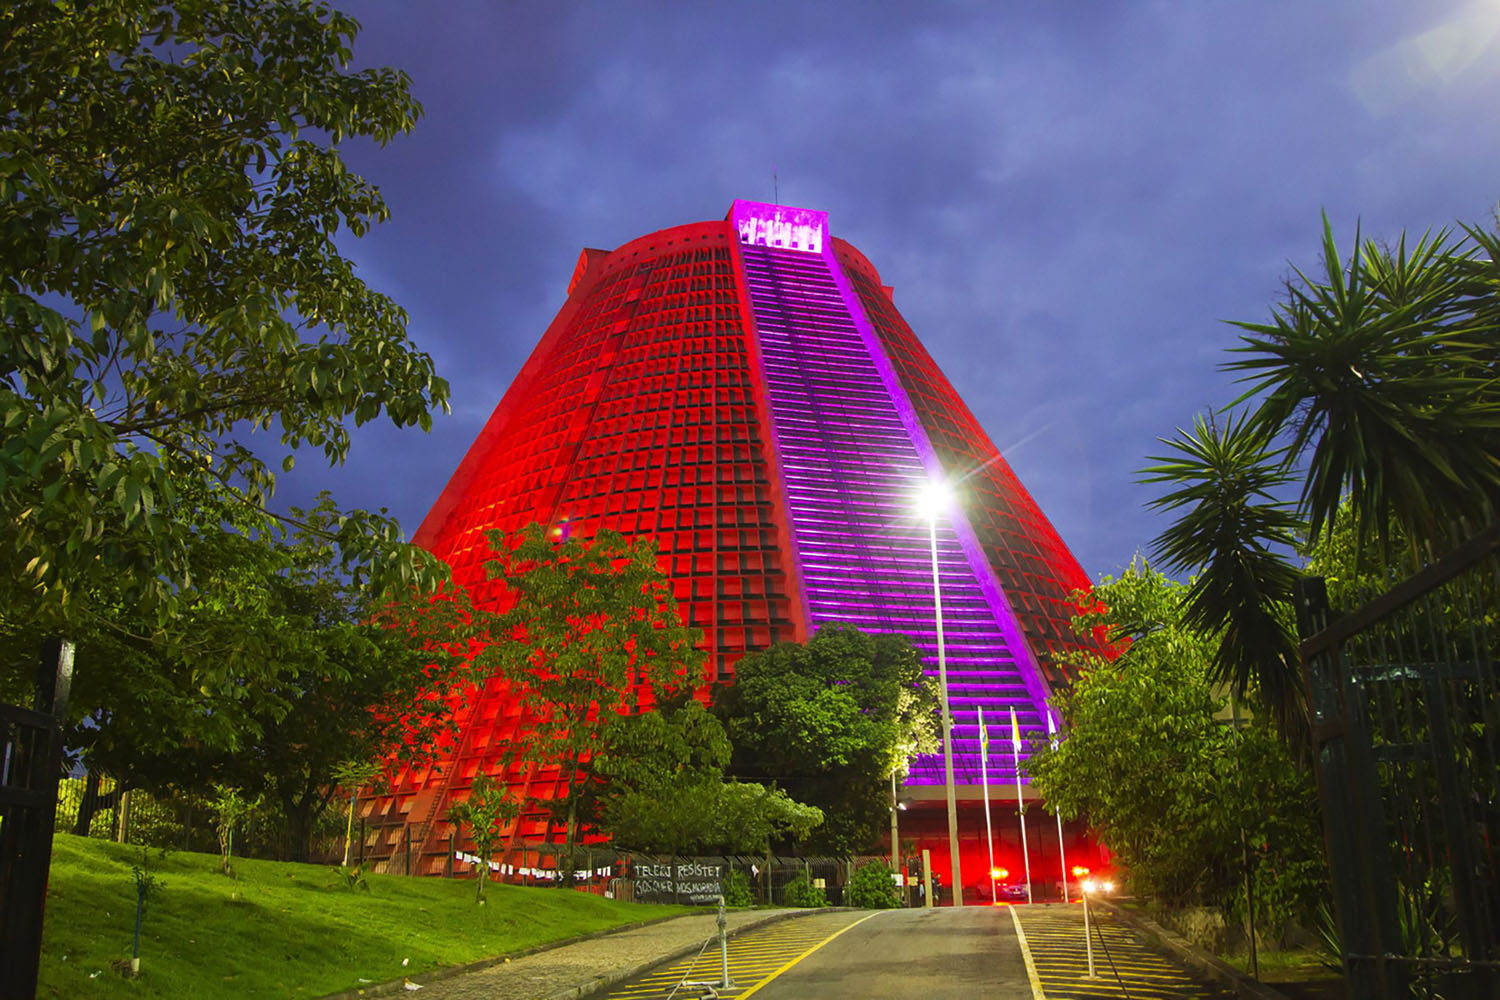 The Metropolitan Cathedral of Saint Sebastian in Rio de Janeiro colourfully illuminated in the evening